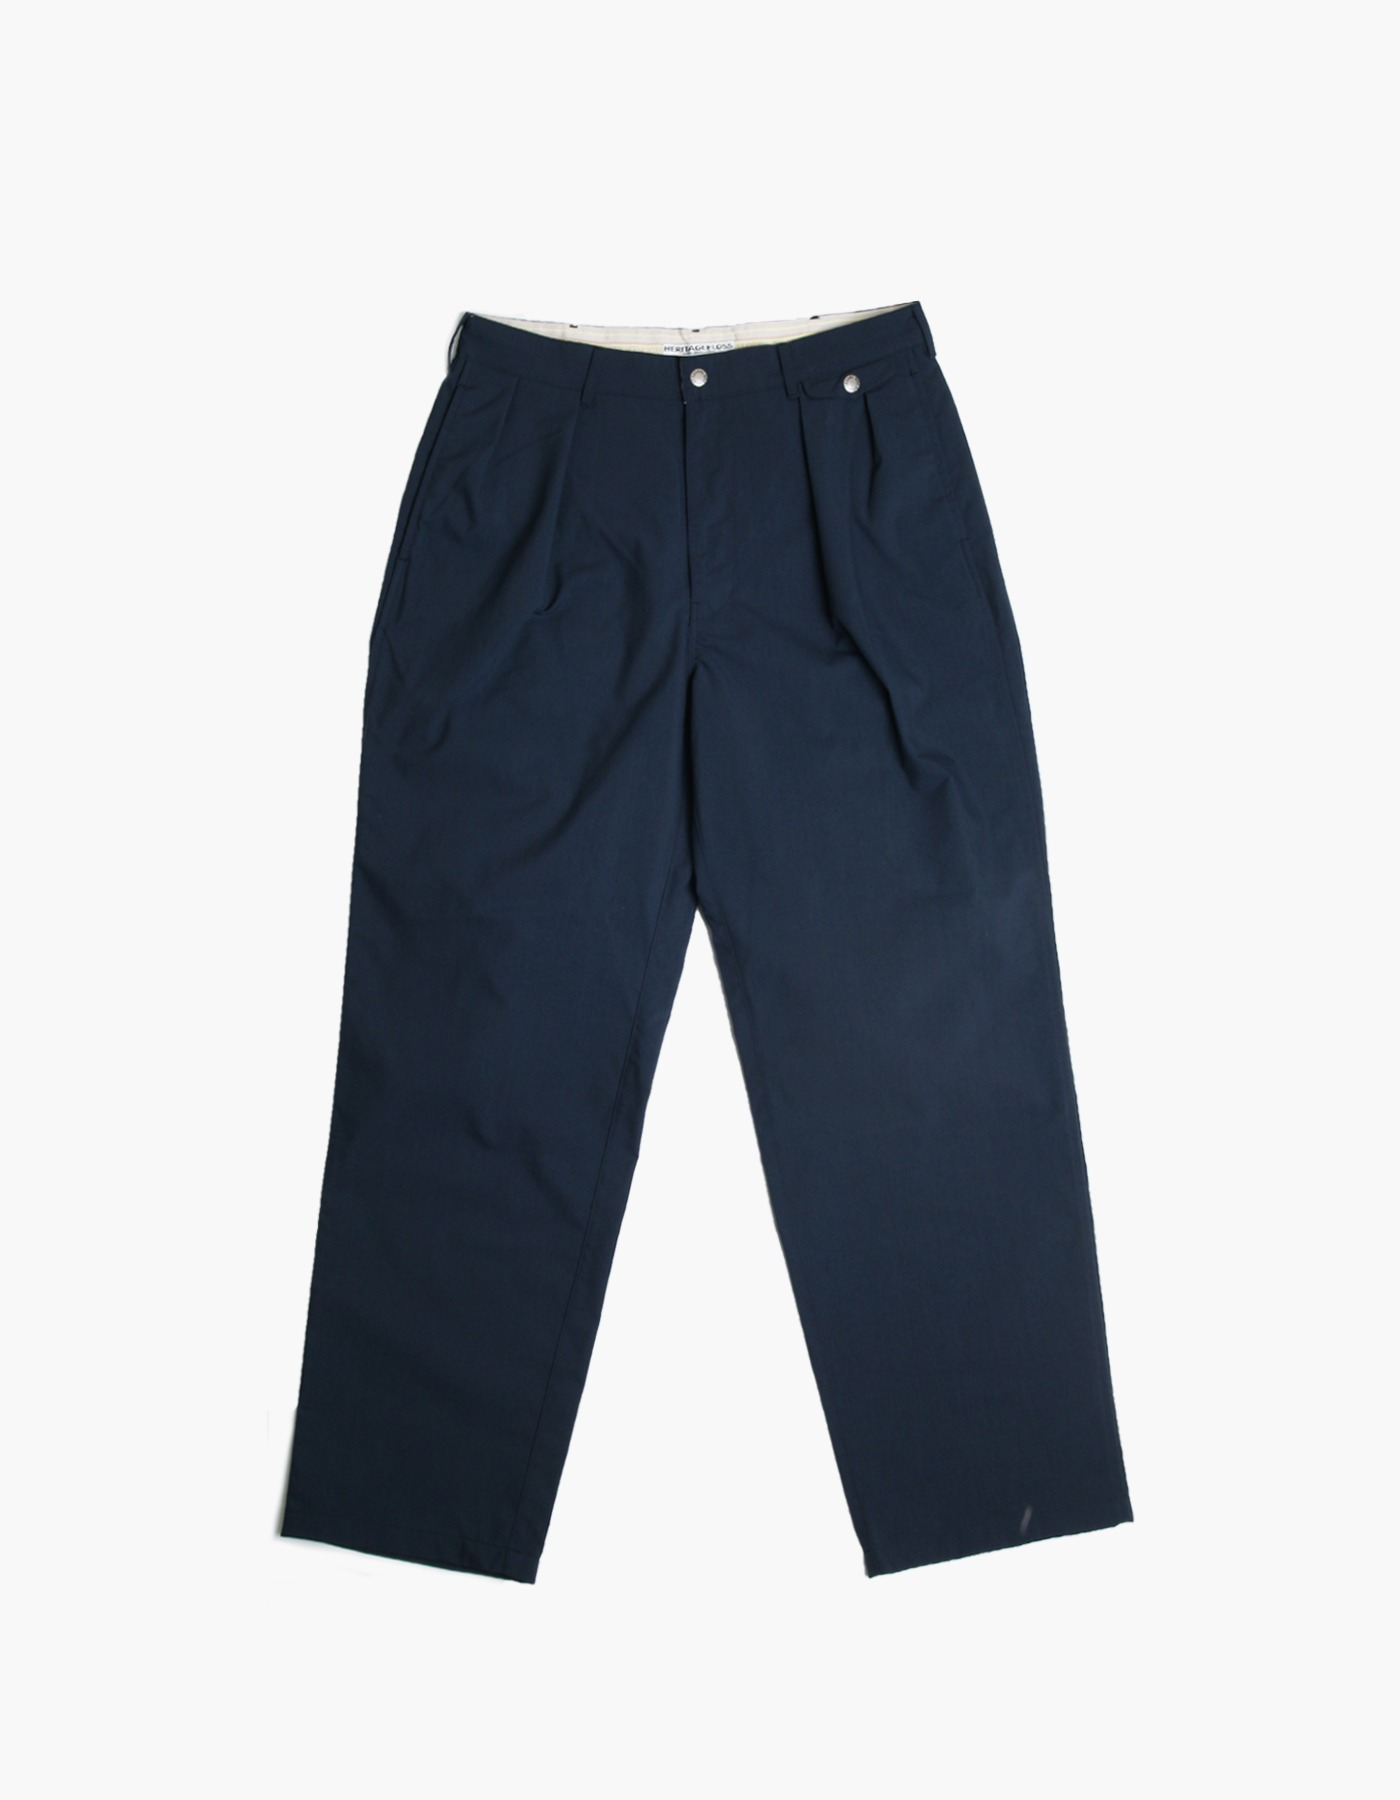 QUICK-DRYING NYLON CHINO PANTS / NAVY